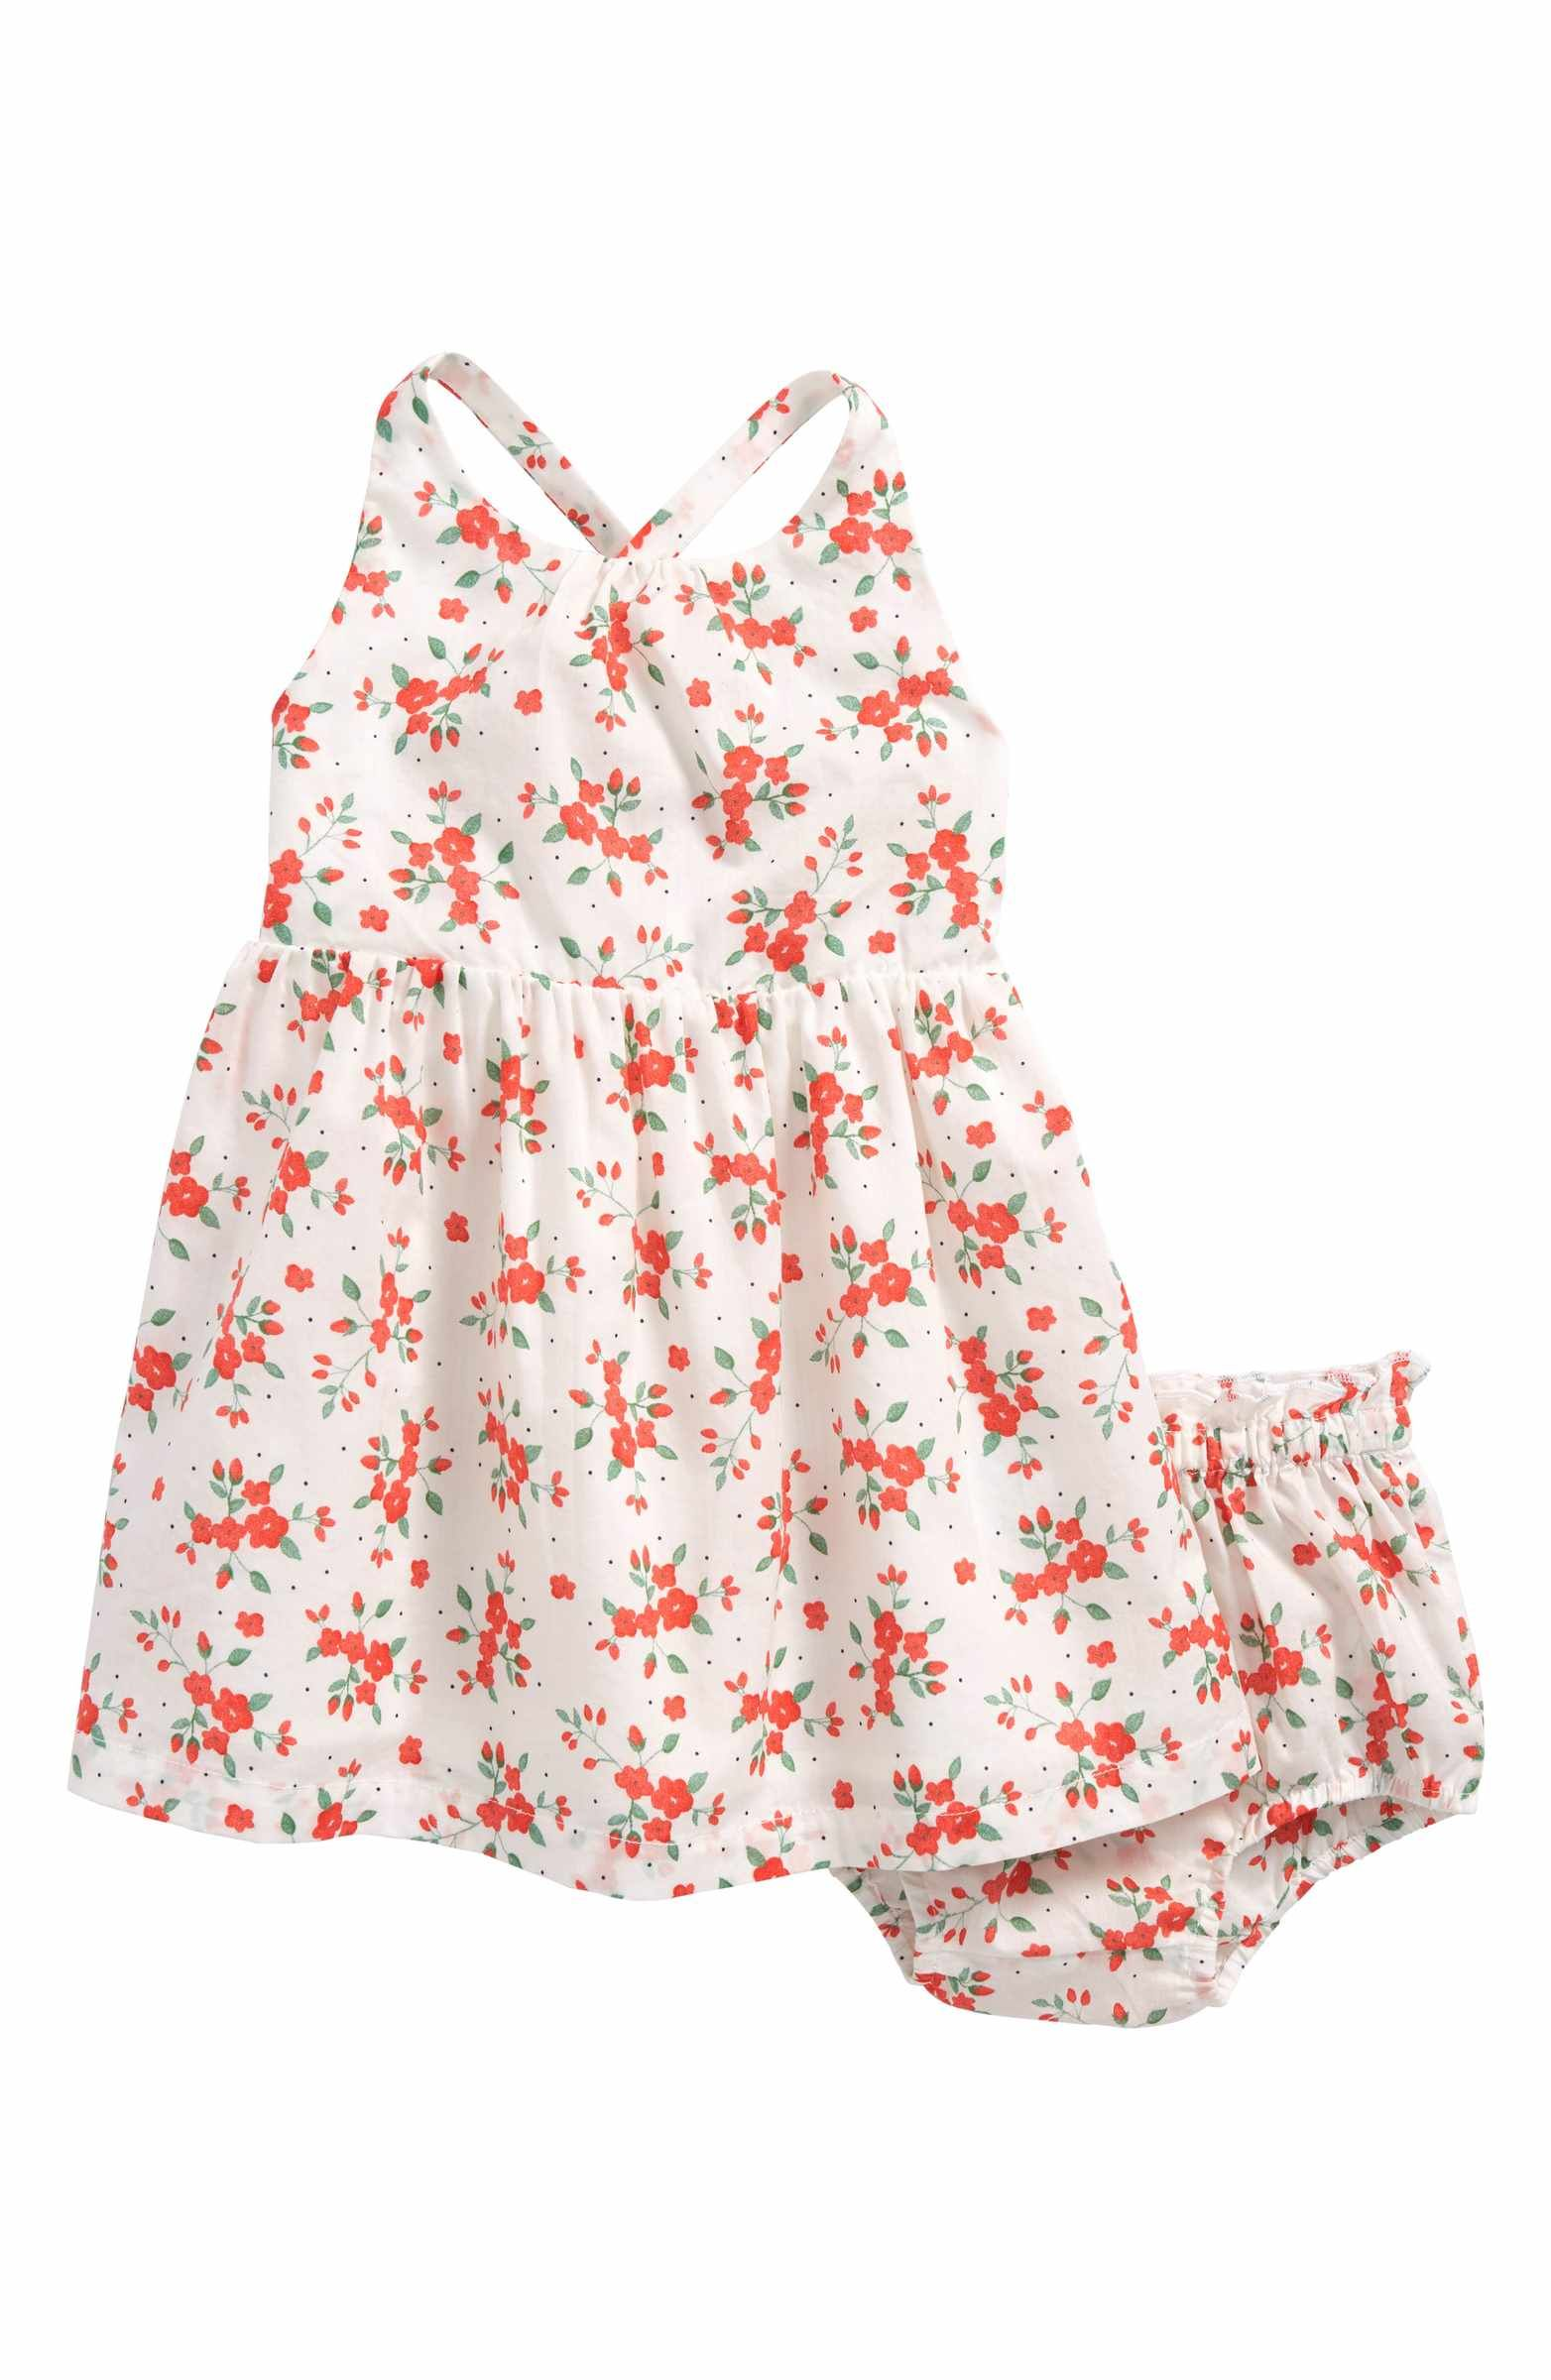 adfb847c7 Main Image - Ruby   Bloom Floral Sundress (Baby Girls)